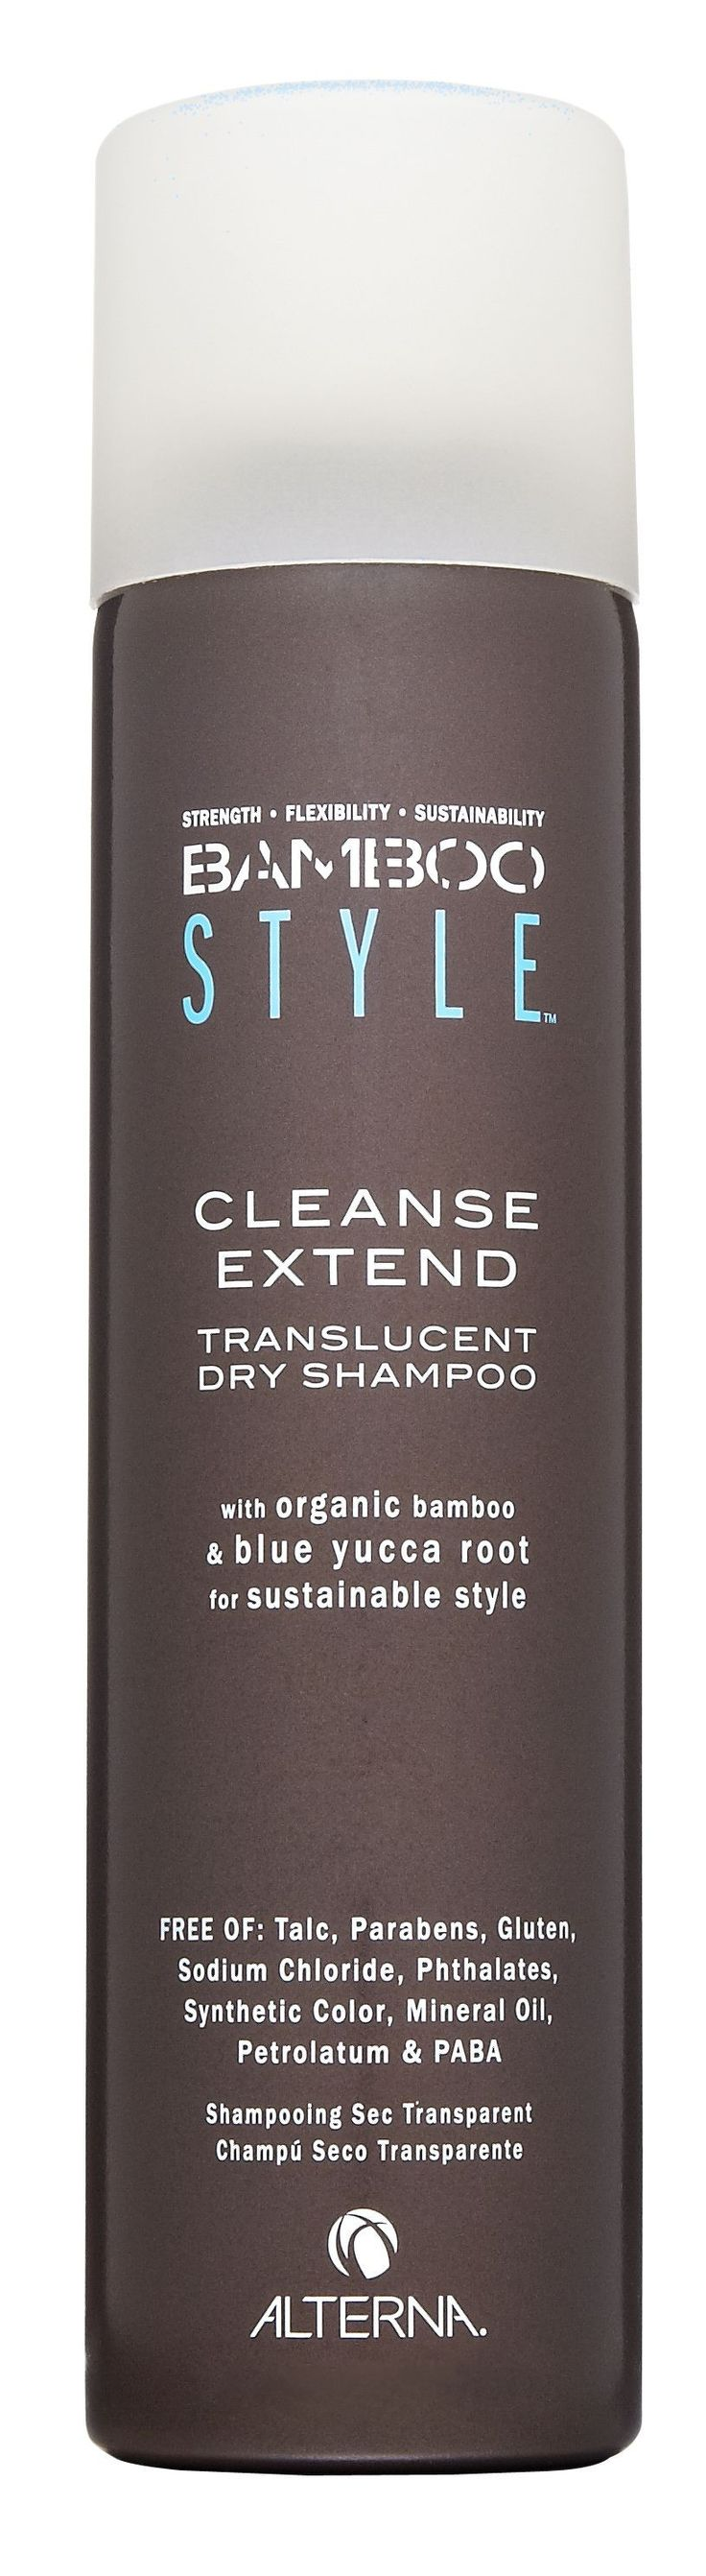 seconds to shampoo -Alterna Haircare***